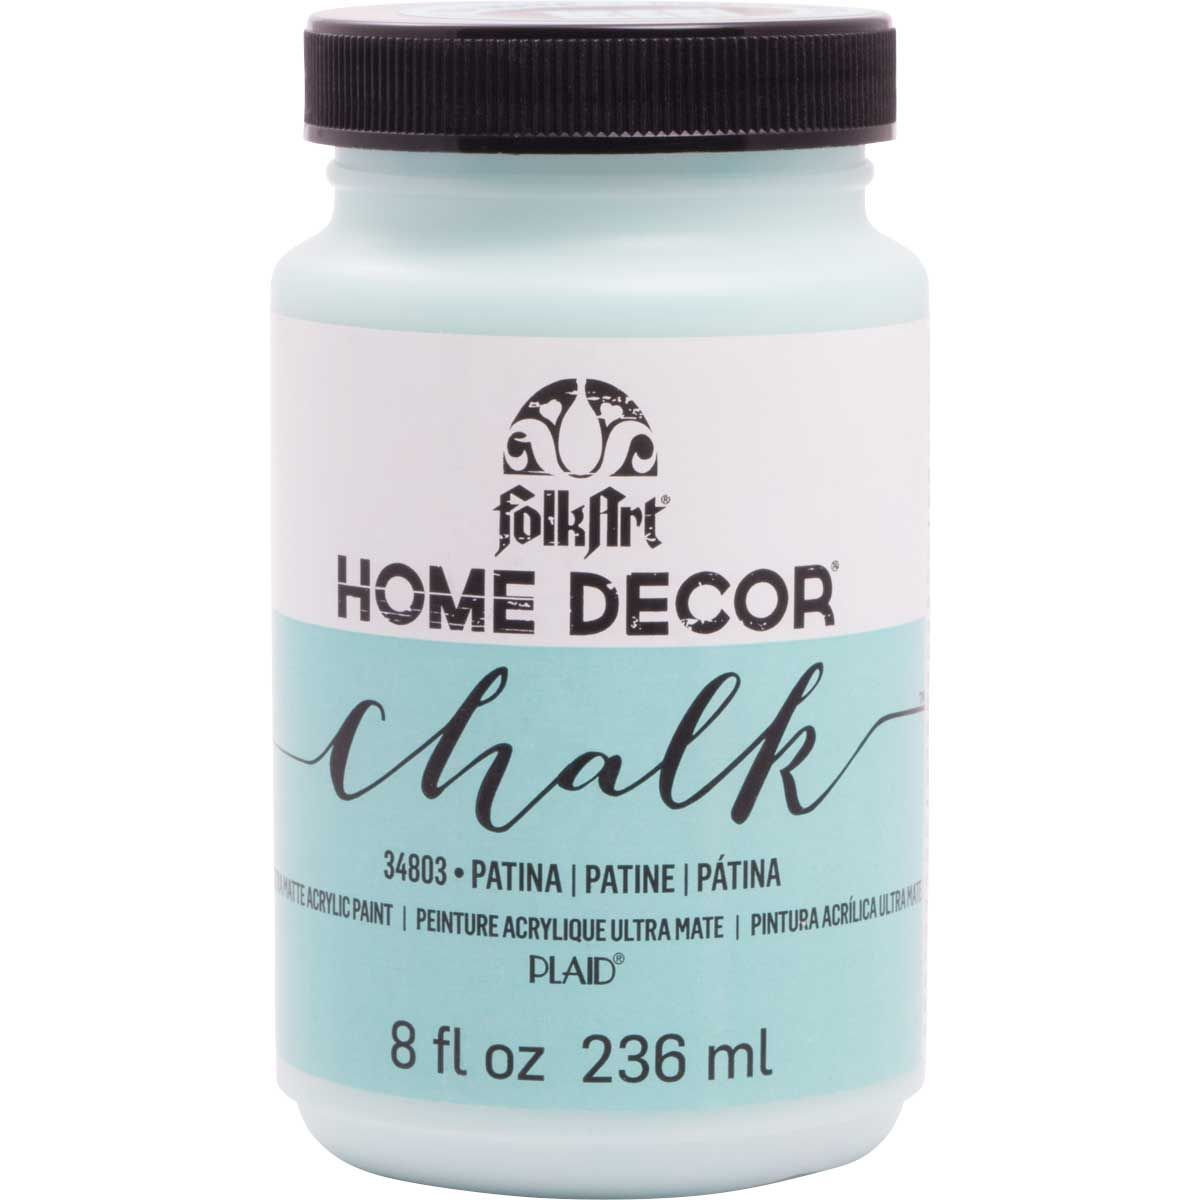 FolkArt ® Home Decor™ Chalk - Patina, 8 oz.